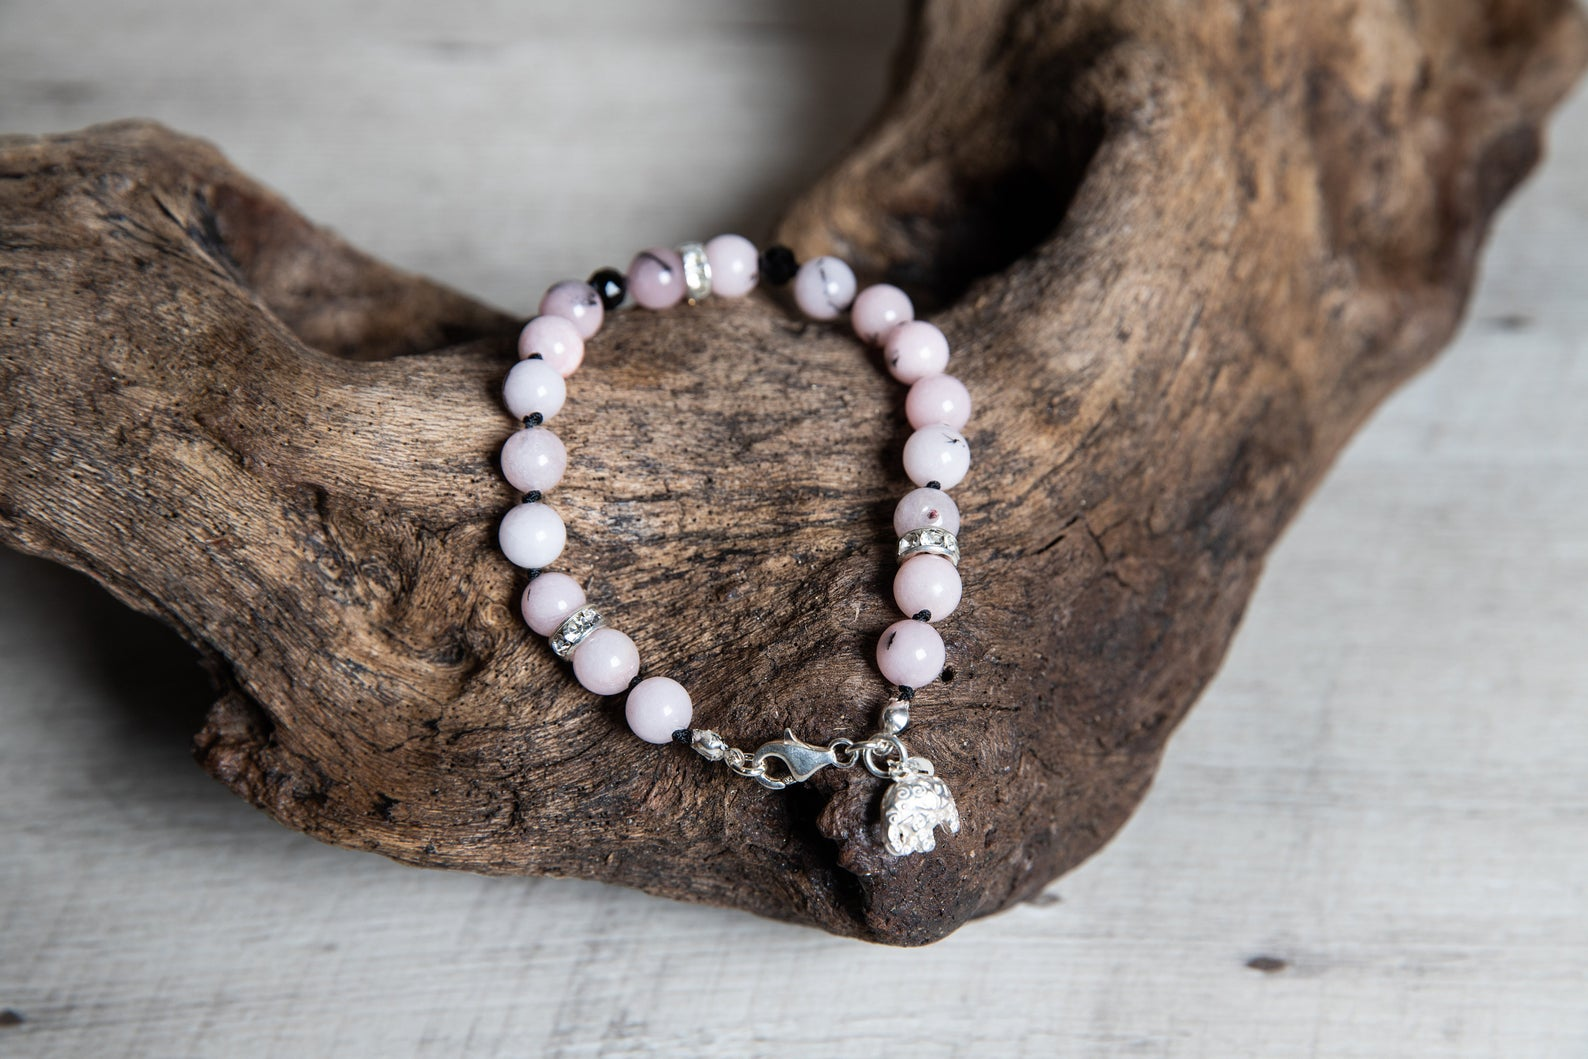 Cherry Blossom Jasper Beaded Bracelet with Black Crystals and Silver Elephant Charm, Elegant Boho Jewelry